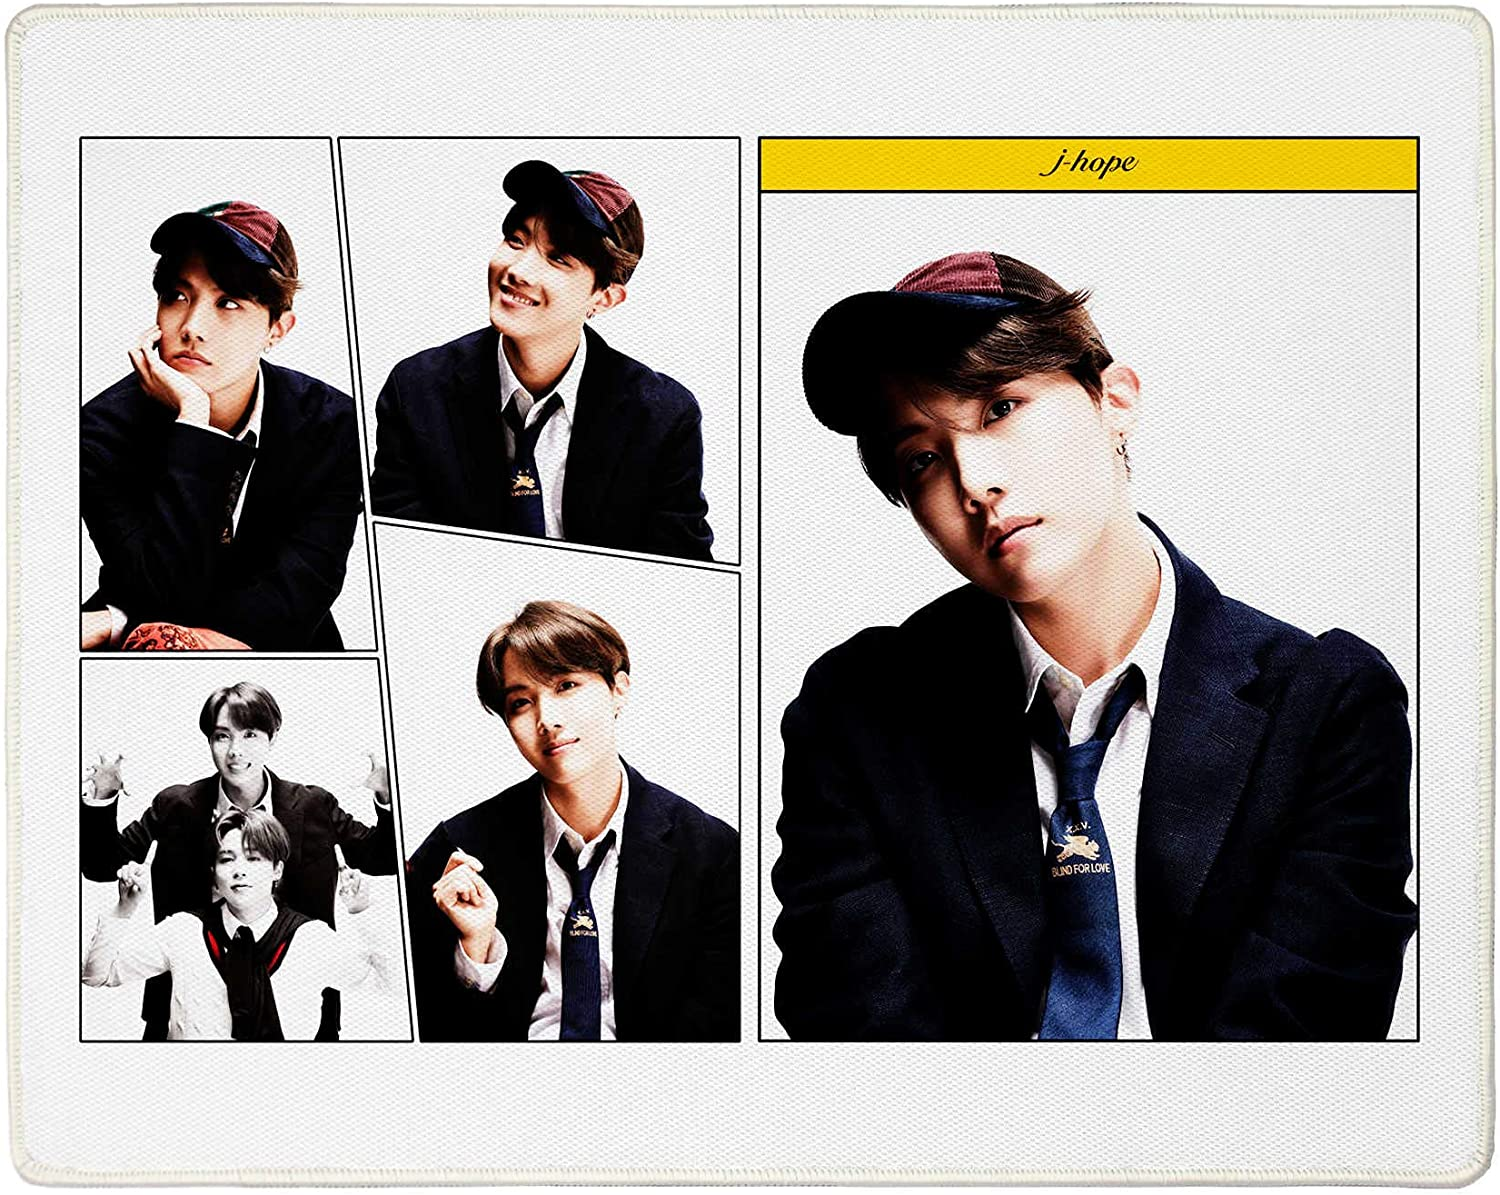 K23 7 Album 17.3 x 13.7 inch Stitched Edge Mousepad with lomo Card Fanstown Kpop BTS Bangtan Computer Mouse Pad MAP of The Soul